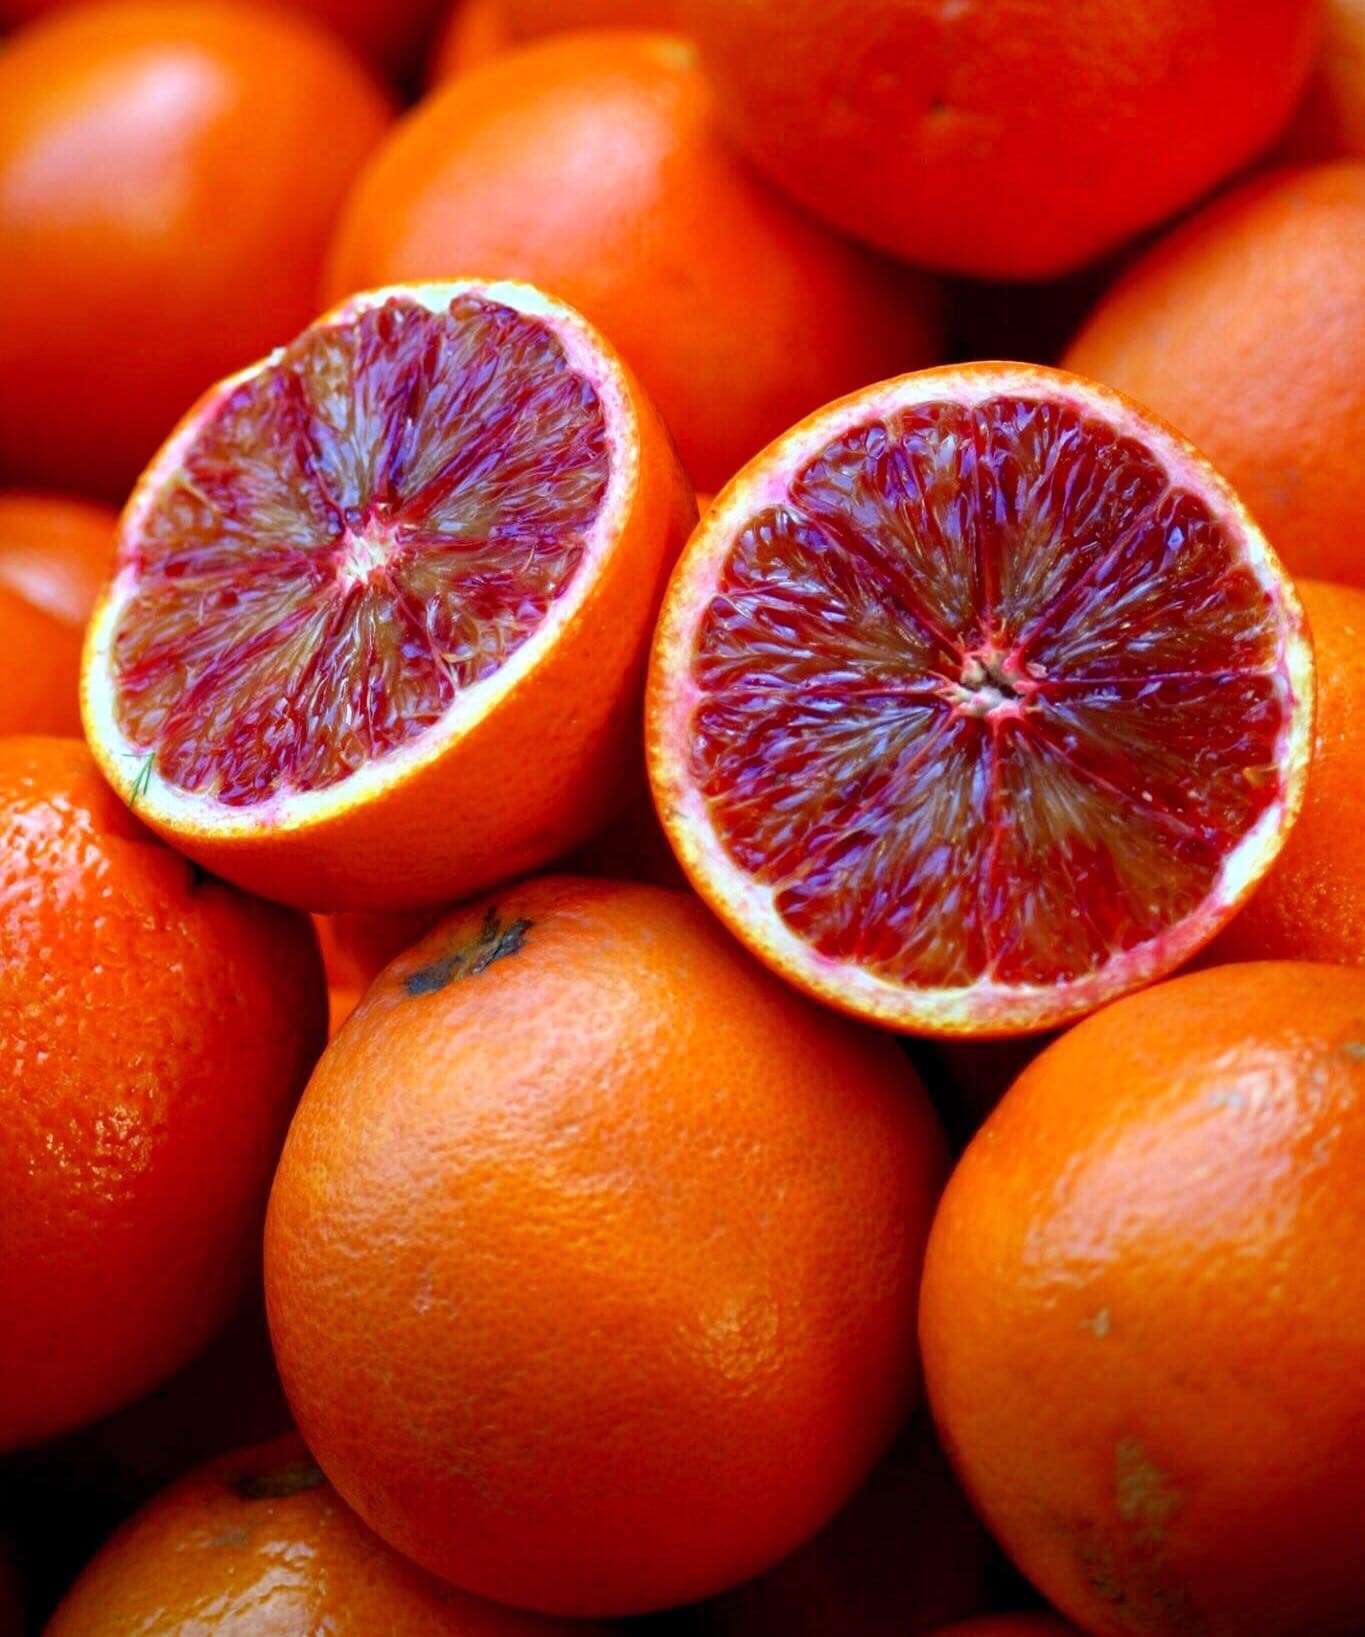 Blood orange has a lovely red color